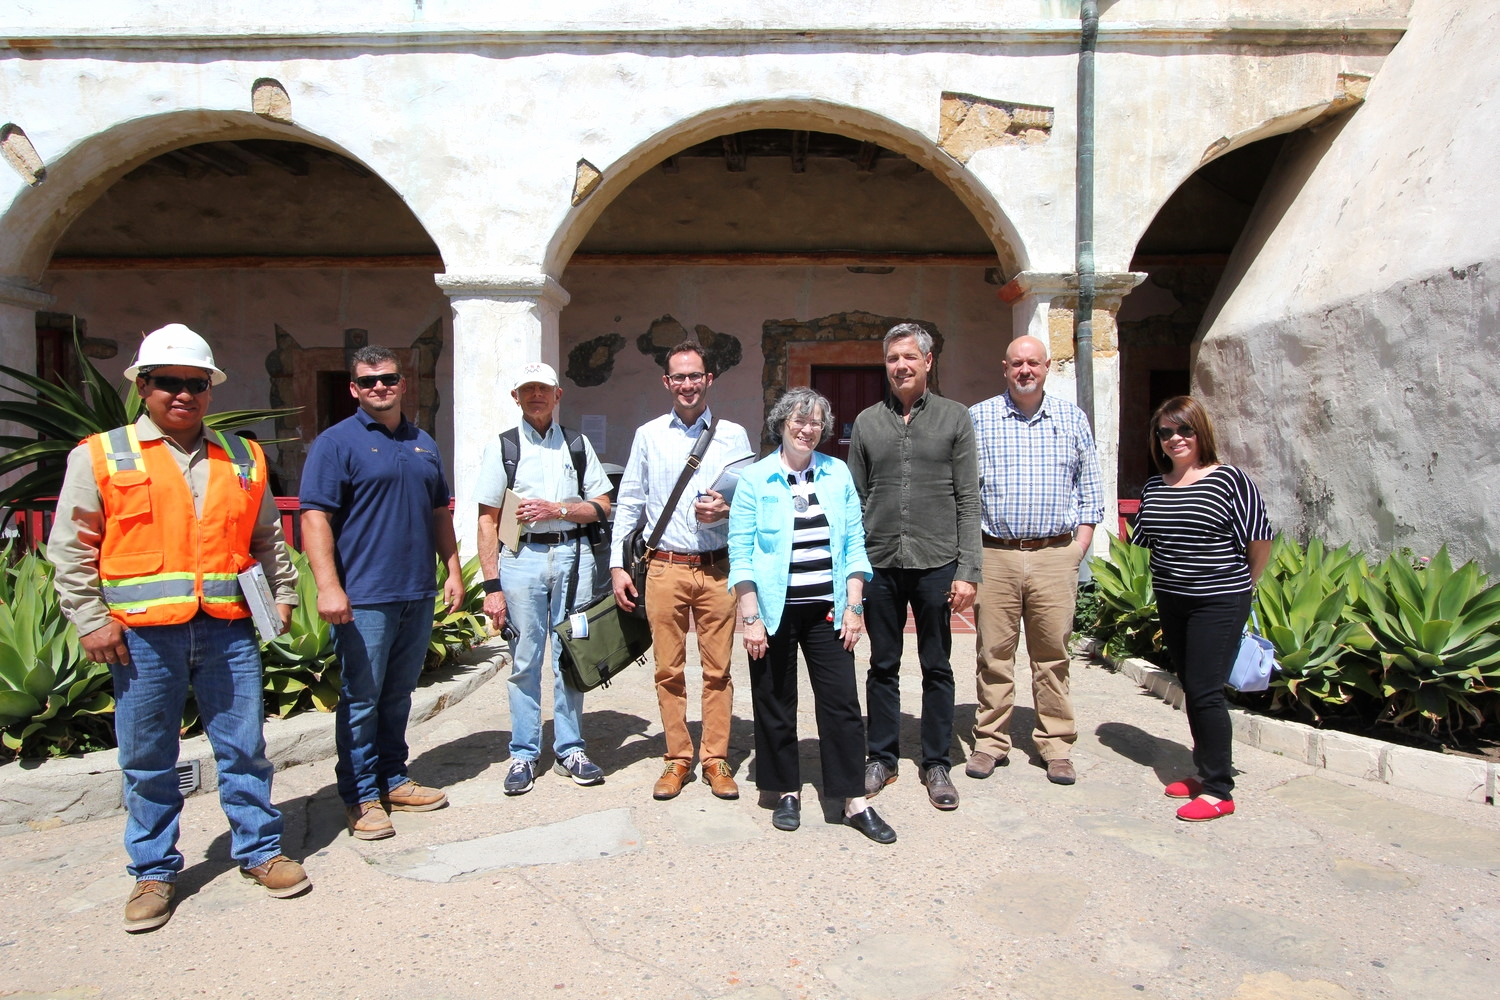 Project team members in front of the  convento  wing south elevation. From left: Napoleon Gallardo (Spectra), Troy Parry (Spectra), Nels Roselund (Roselund Engineering), Shane Swerdlow (Chattel), Tina Foss (Old Mission Santa Barbara), John Griswold (Griswold Conservation Associates), Brother Brian Trawick (Old Mission Santa Barbara), and Gabby Gonzalez (California Missions Foundation).